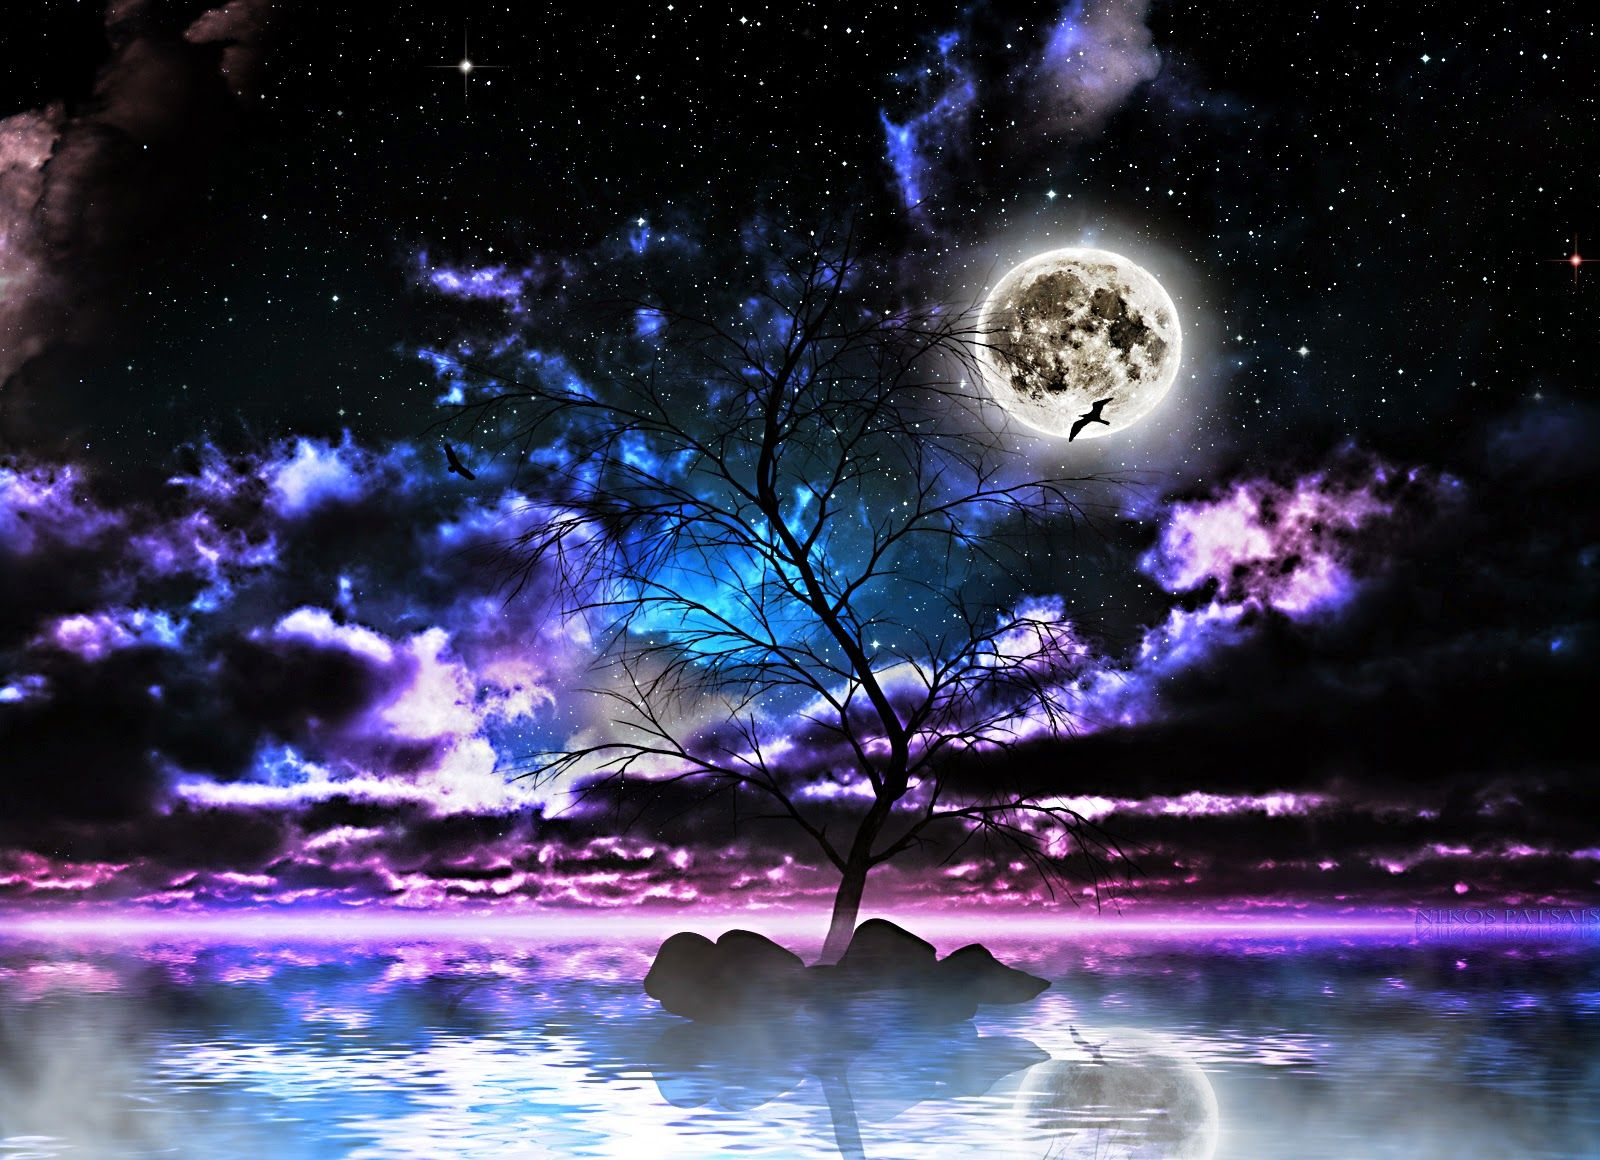 Moon Light And Stars Night Background With Trees Nature Art Images Pixhome Nature Art Night Skies Moon And Stars Wallpaper